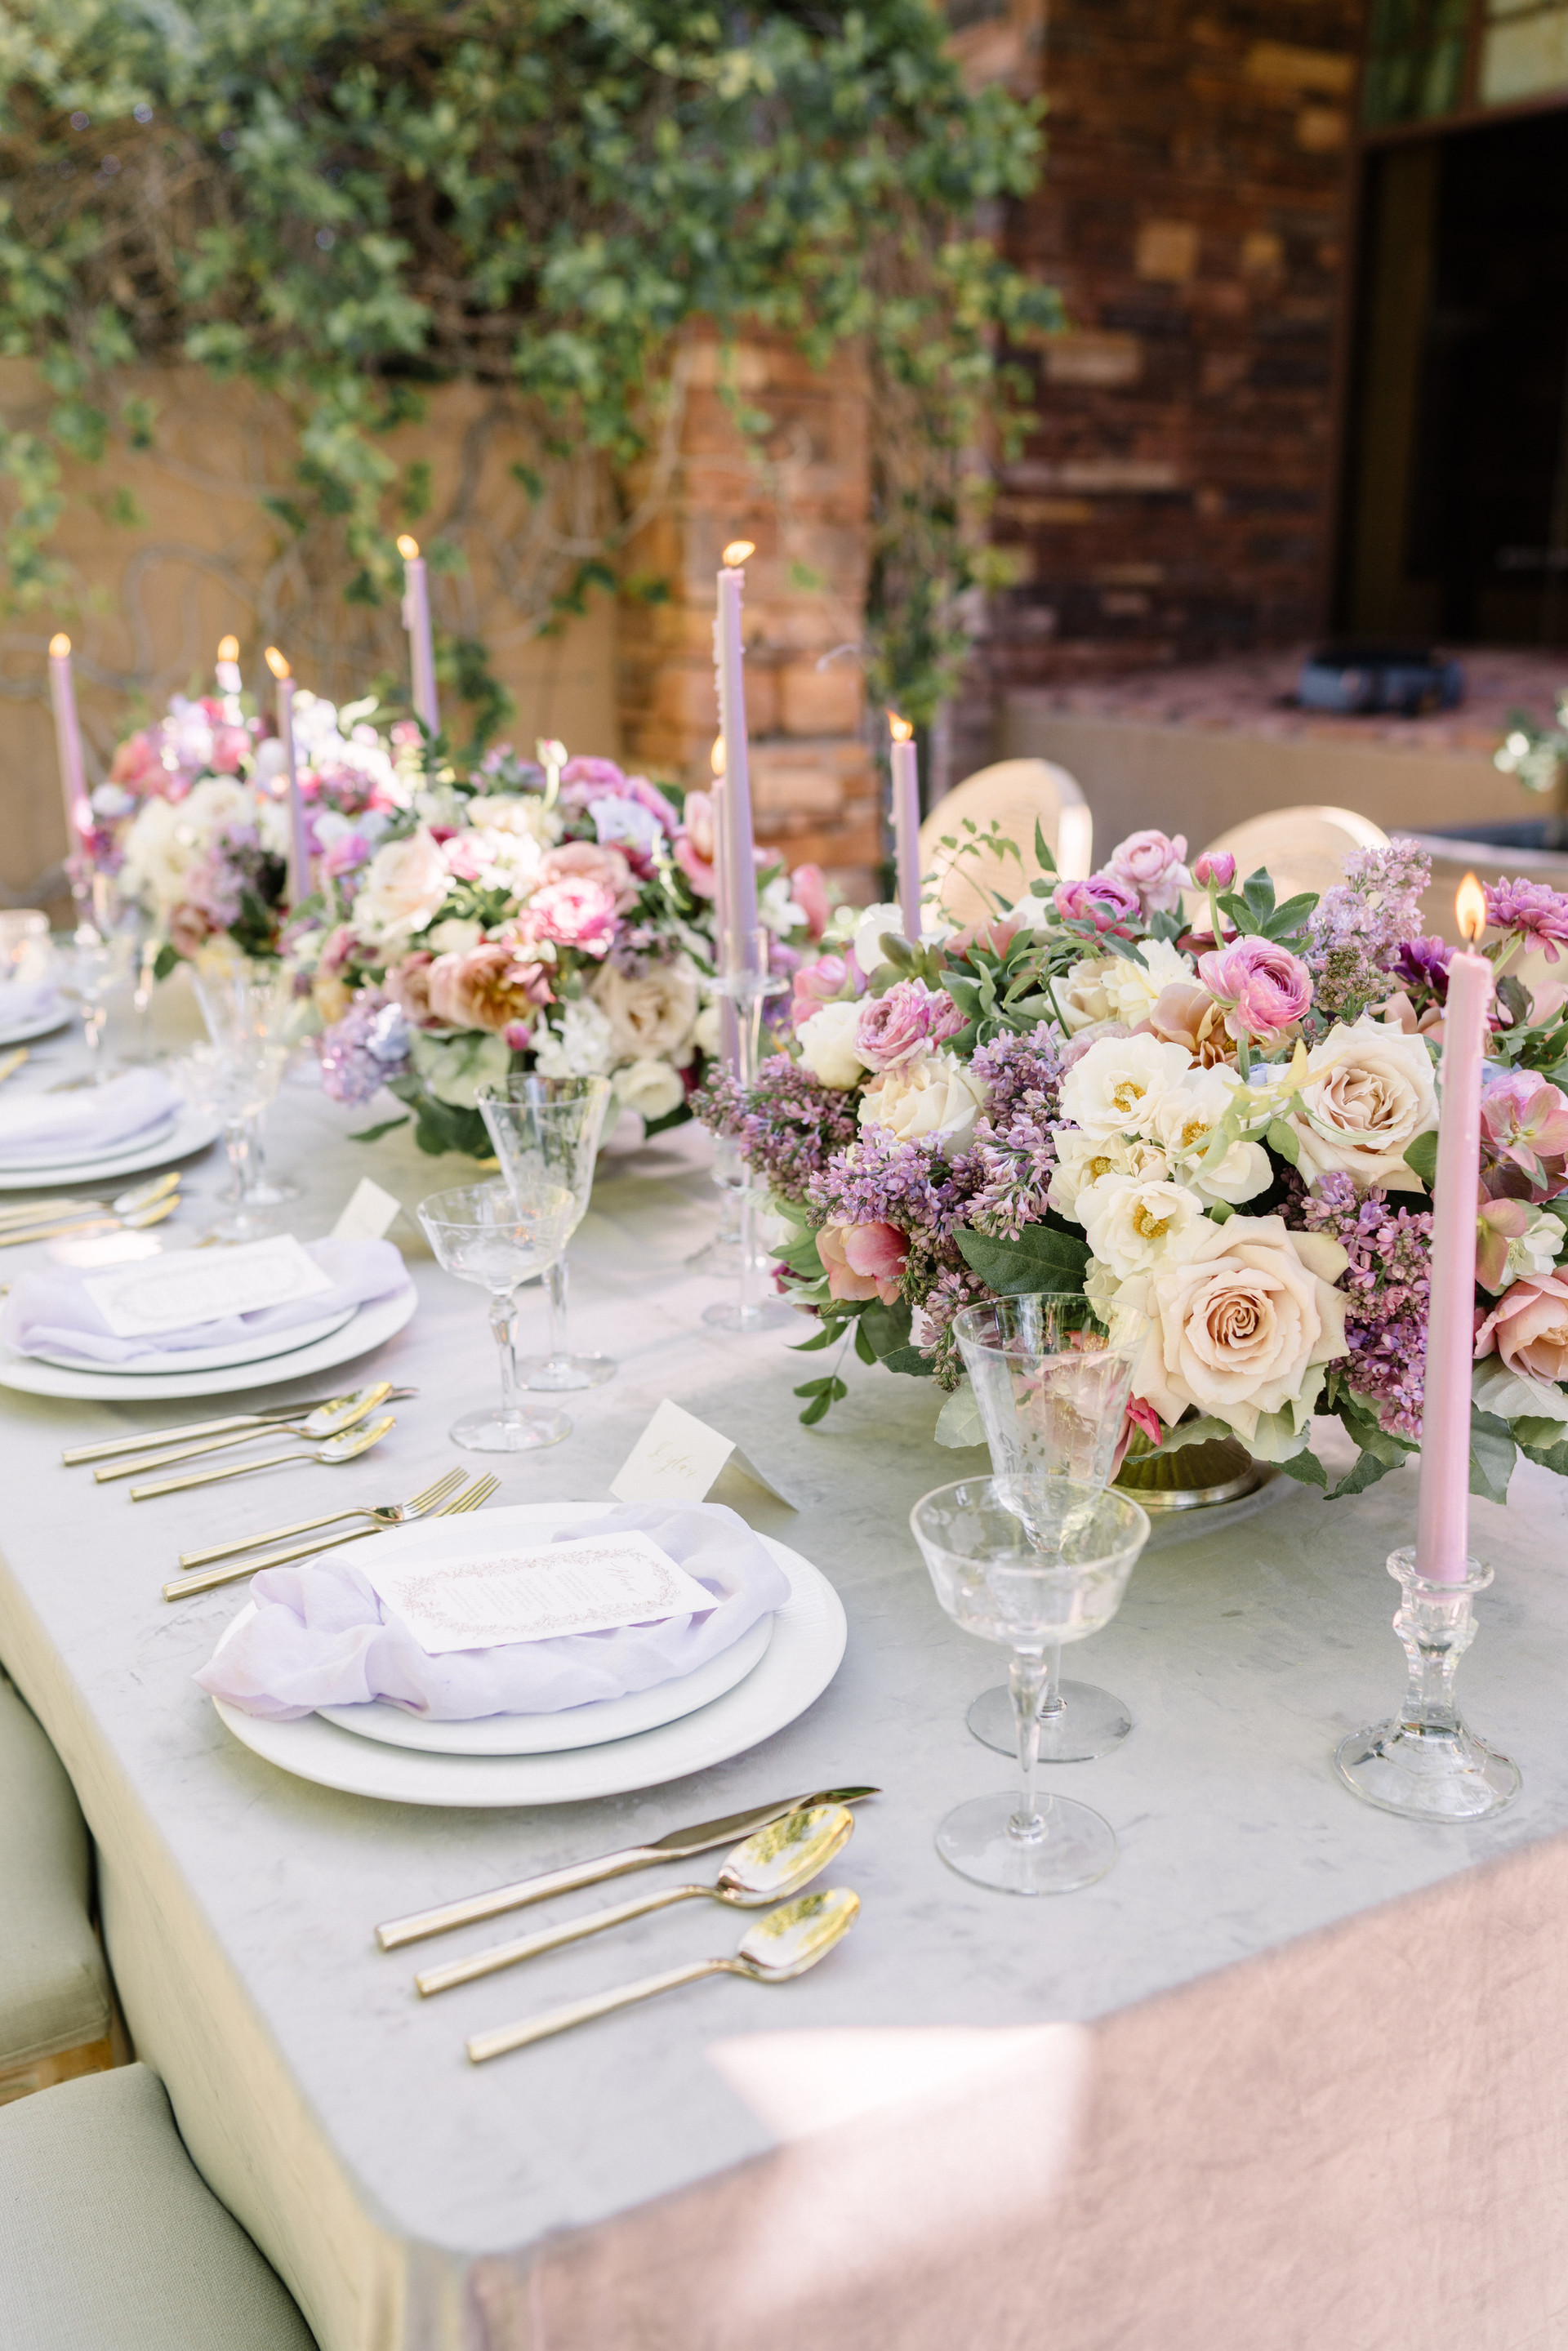 Lavender, plum, chocolate and dusty pink wedding centerpieces. Photo: Gaby Jeter